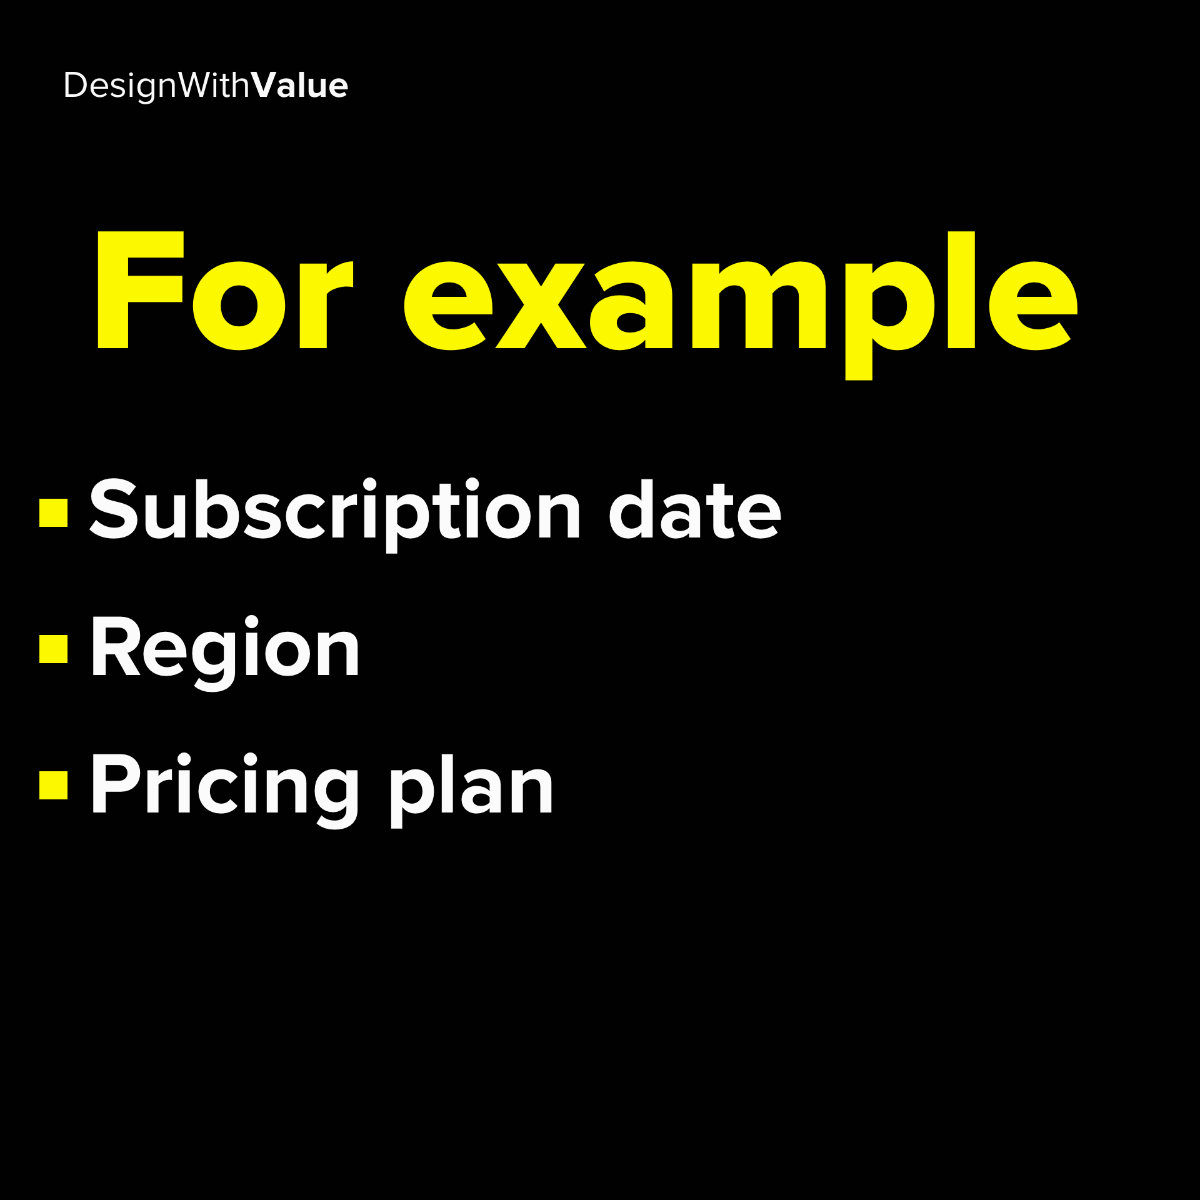 For example: Subscription date, region or pricing plan